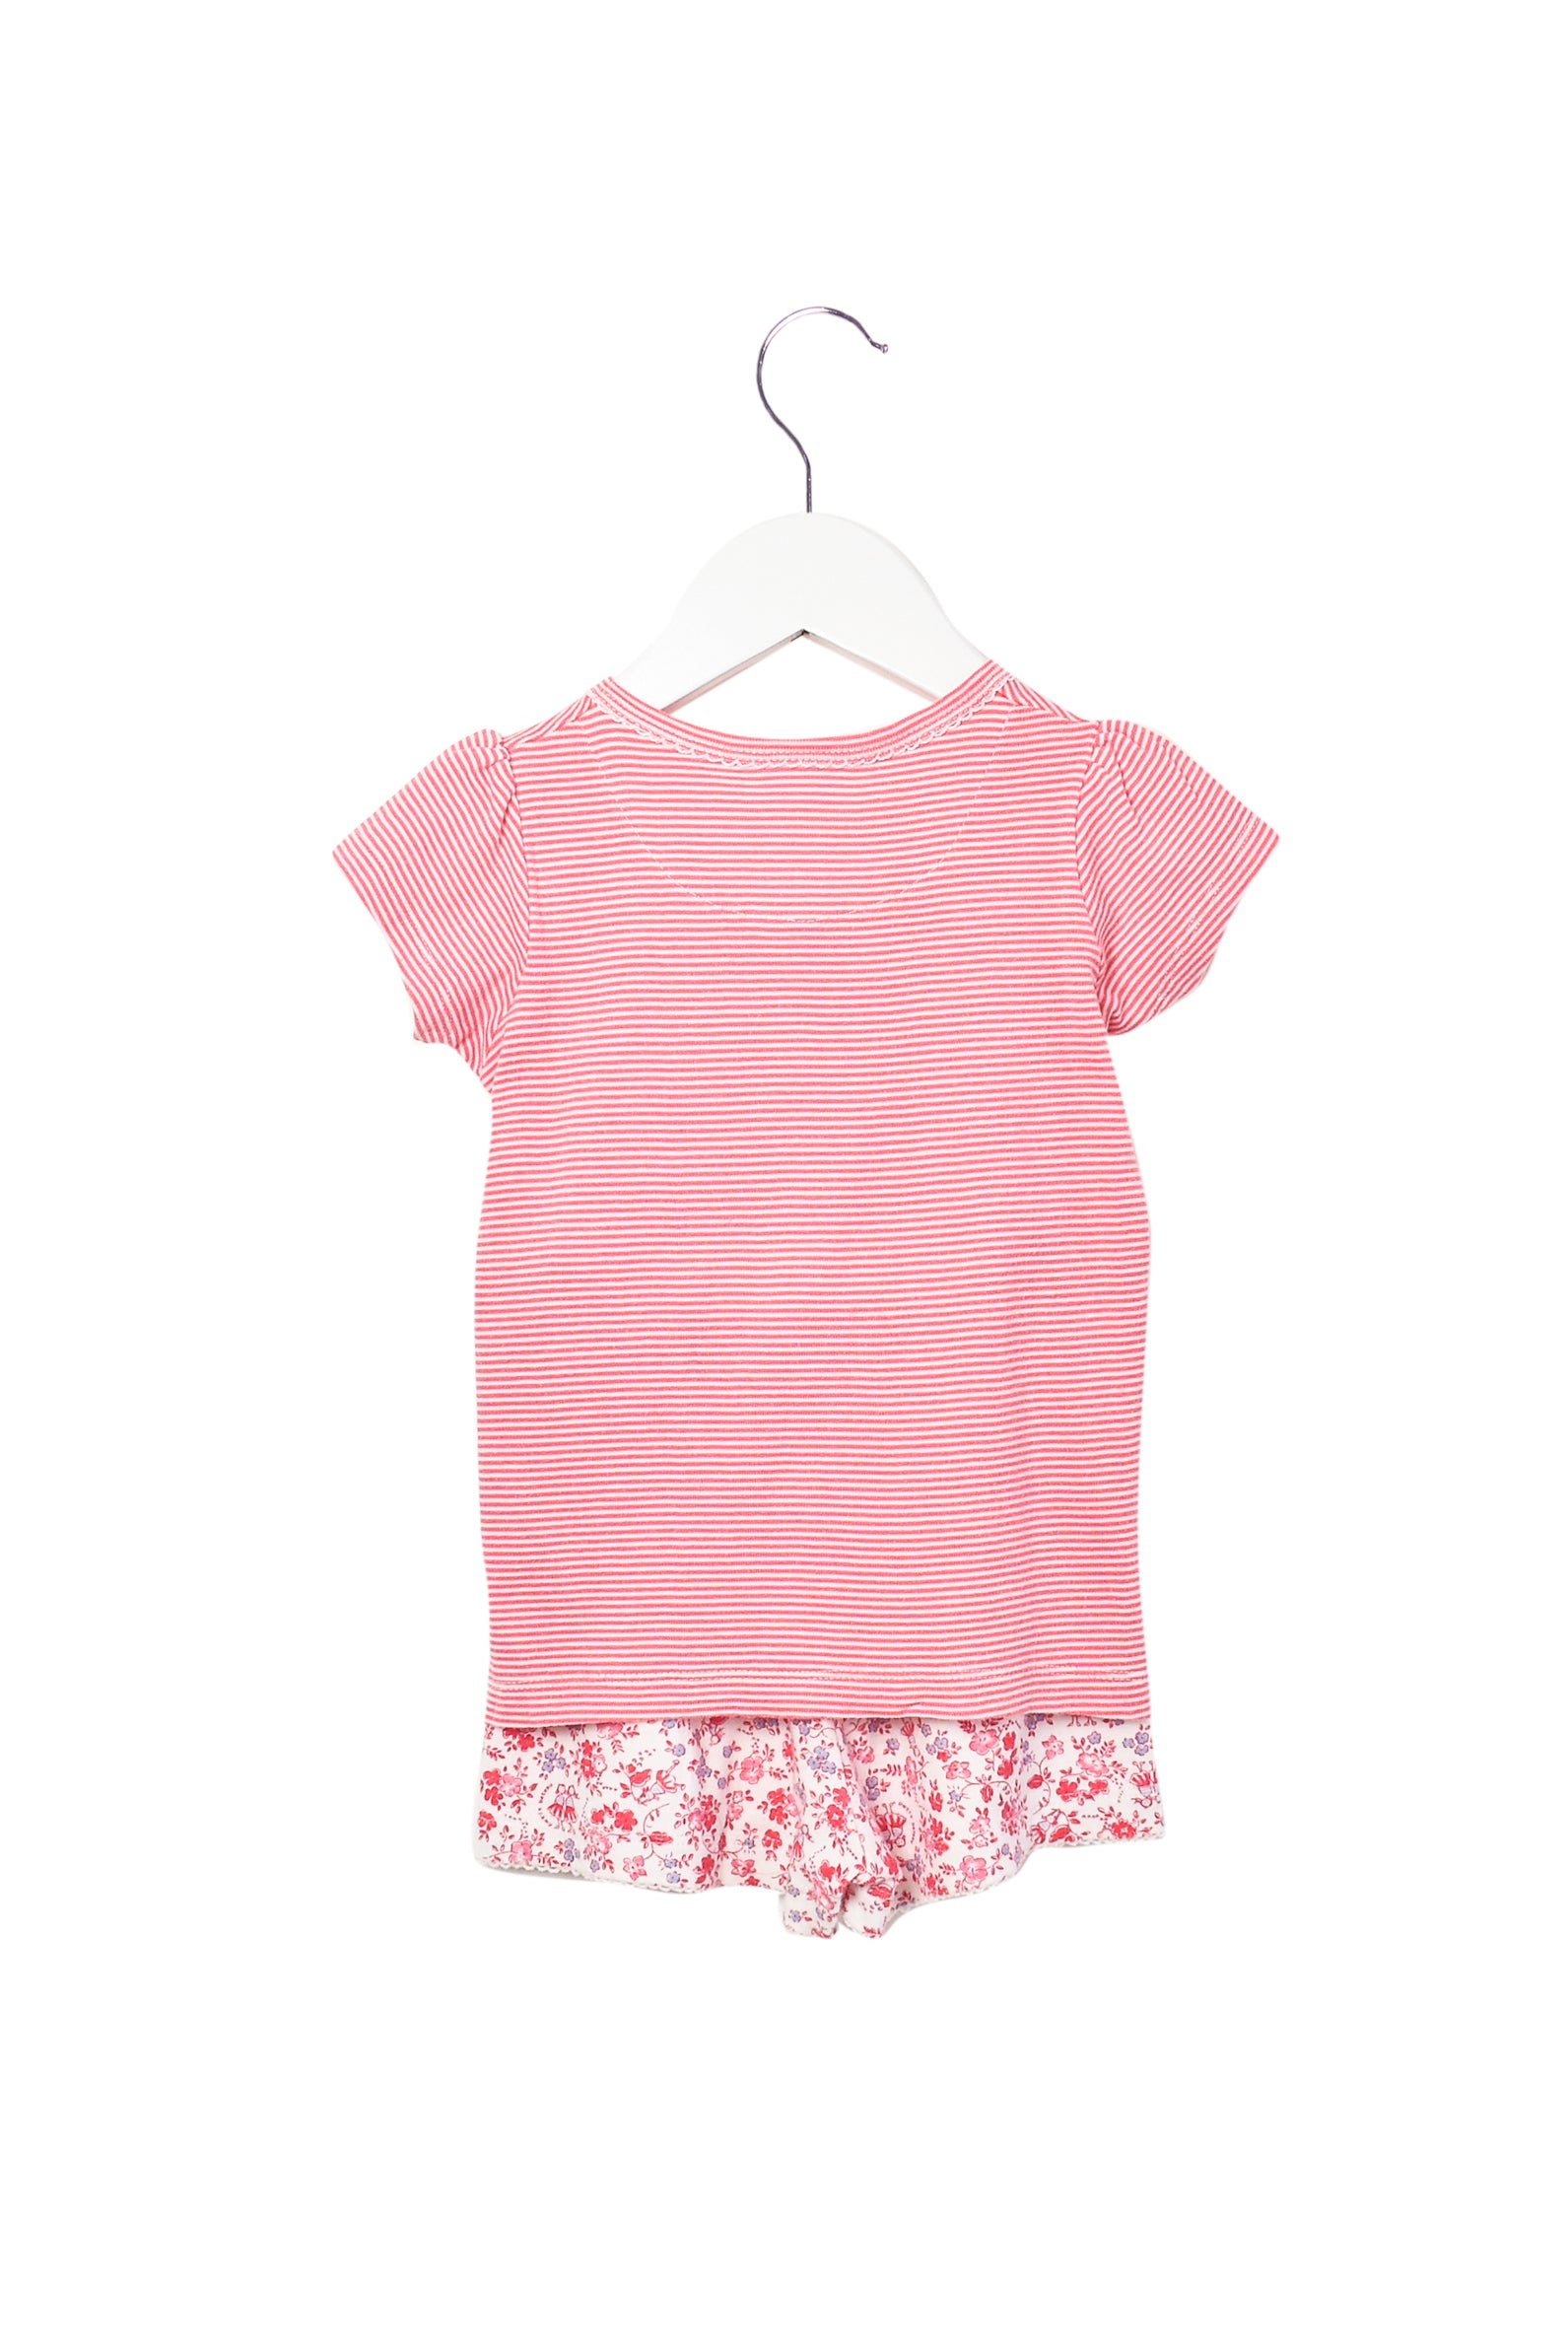 10008453 Petit Bateau Kids~Top and Shorts Set 3T at Retykle